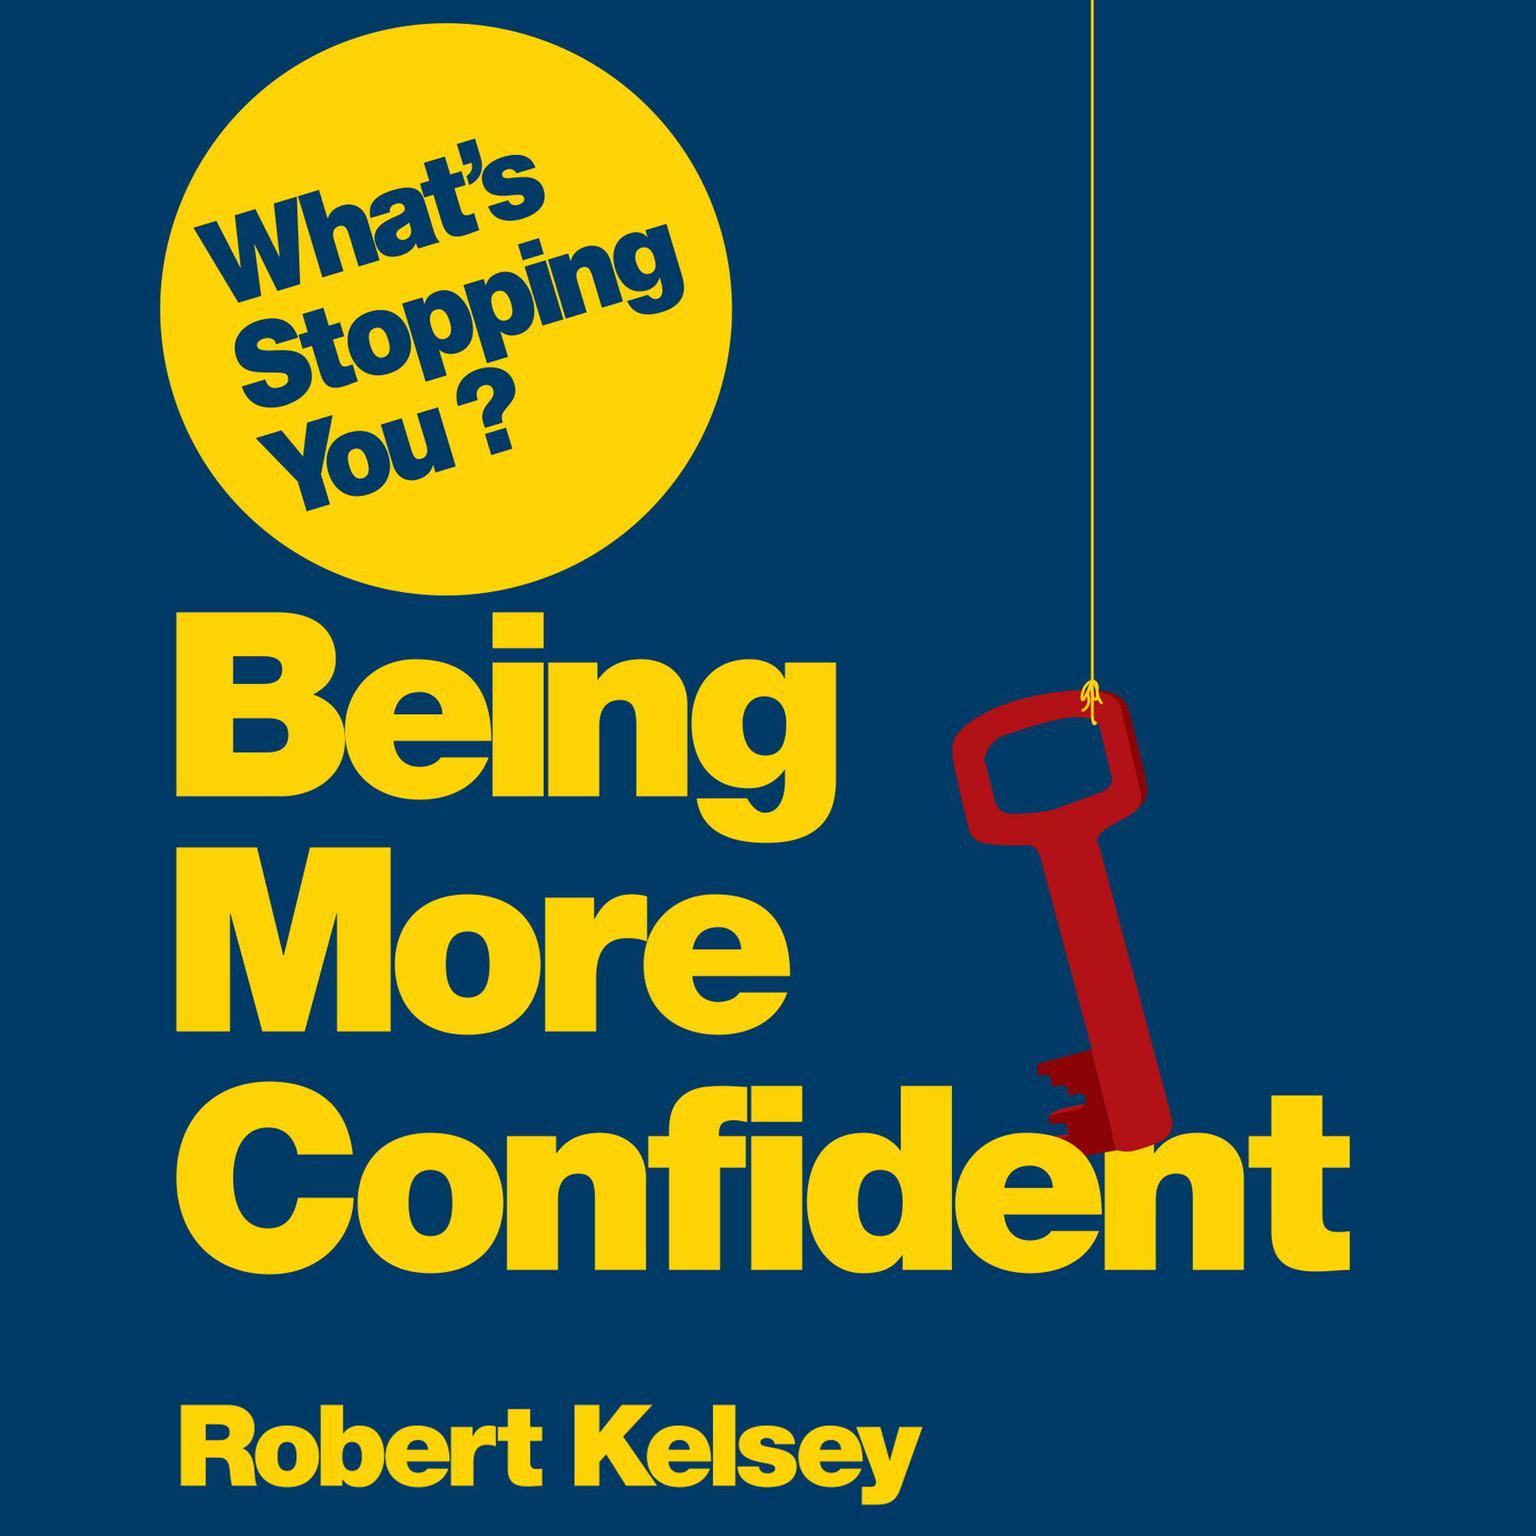 Whats Stopping You? Being More Confident: Why Smart People Can Lack Confidence and What You Can Do About It Audiobook, by Robert Kelsey